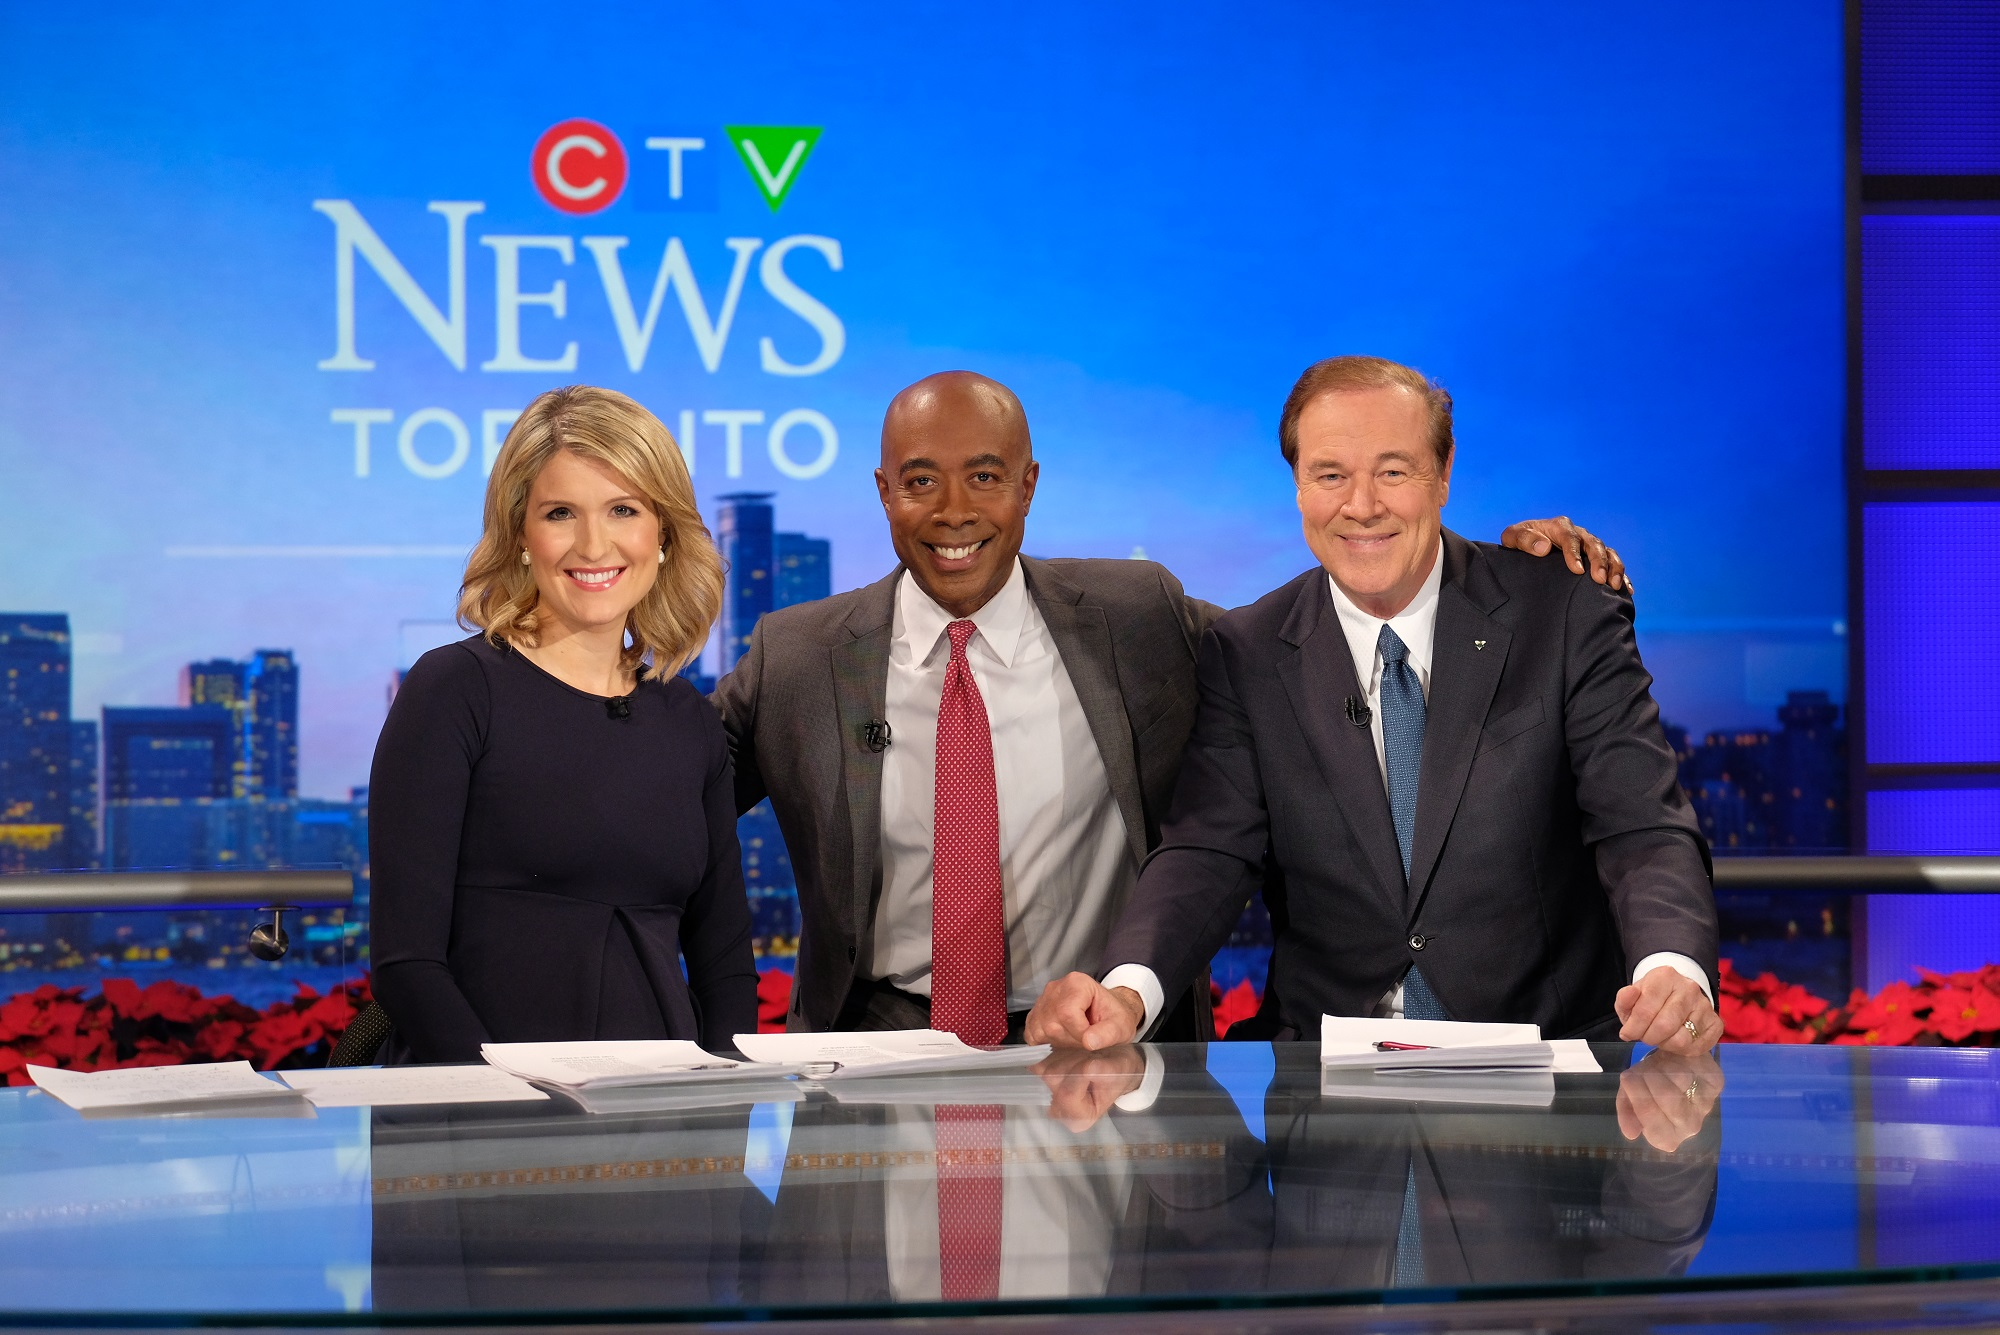 Nathan Downer Named Co-Anchor, CTV News Toronto